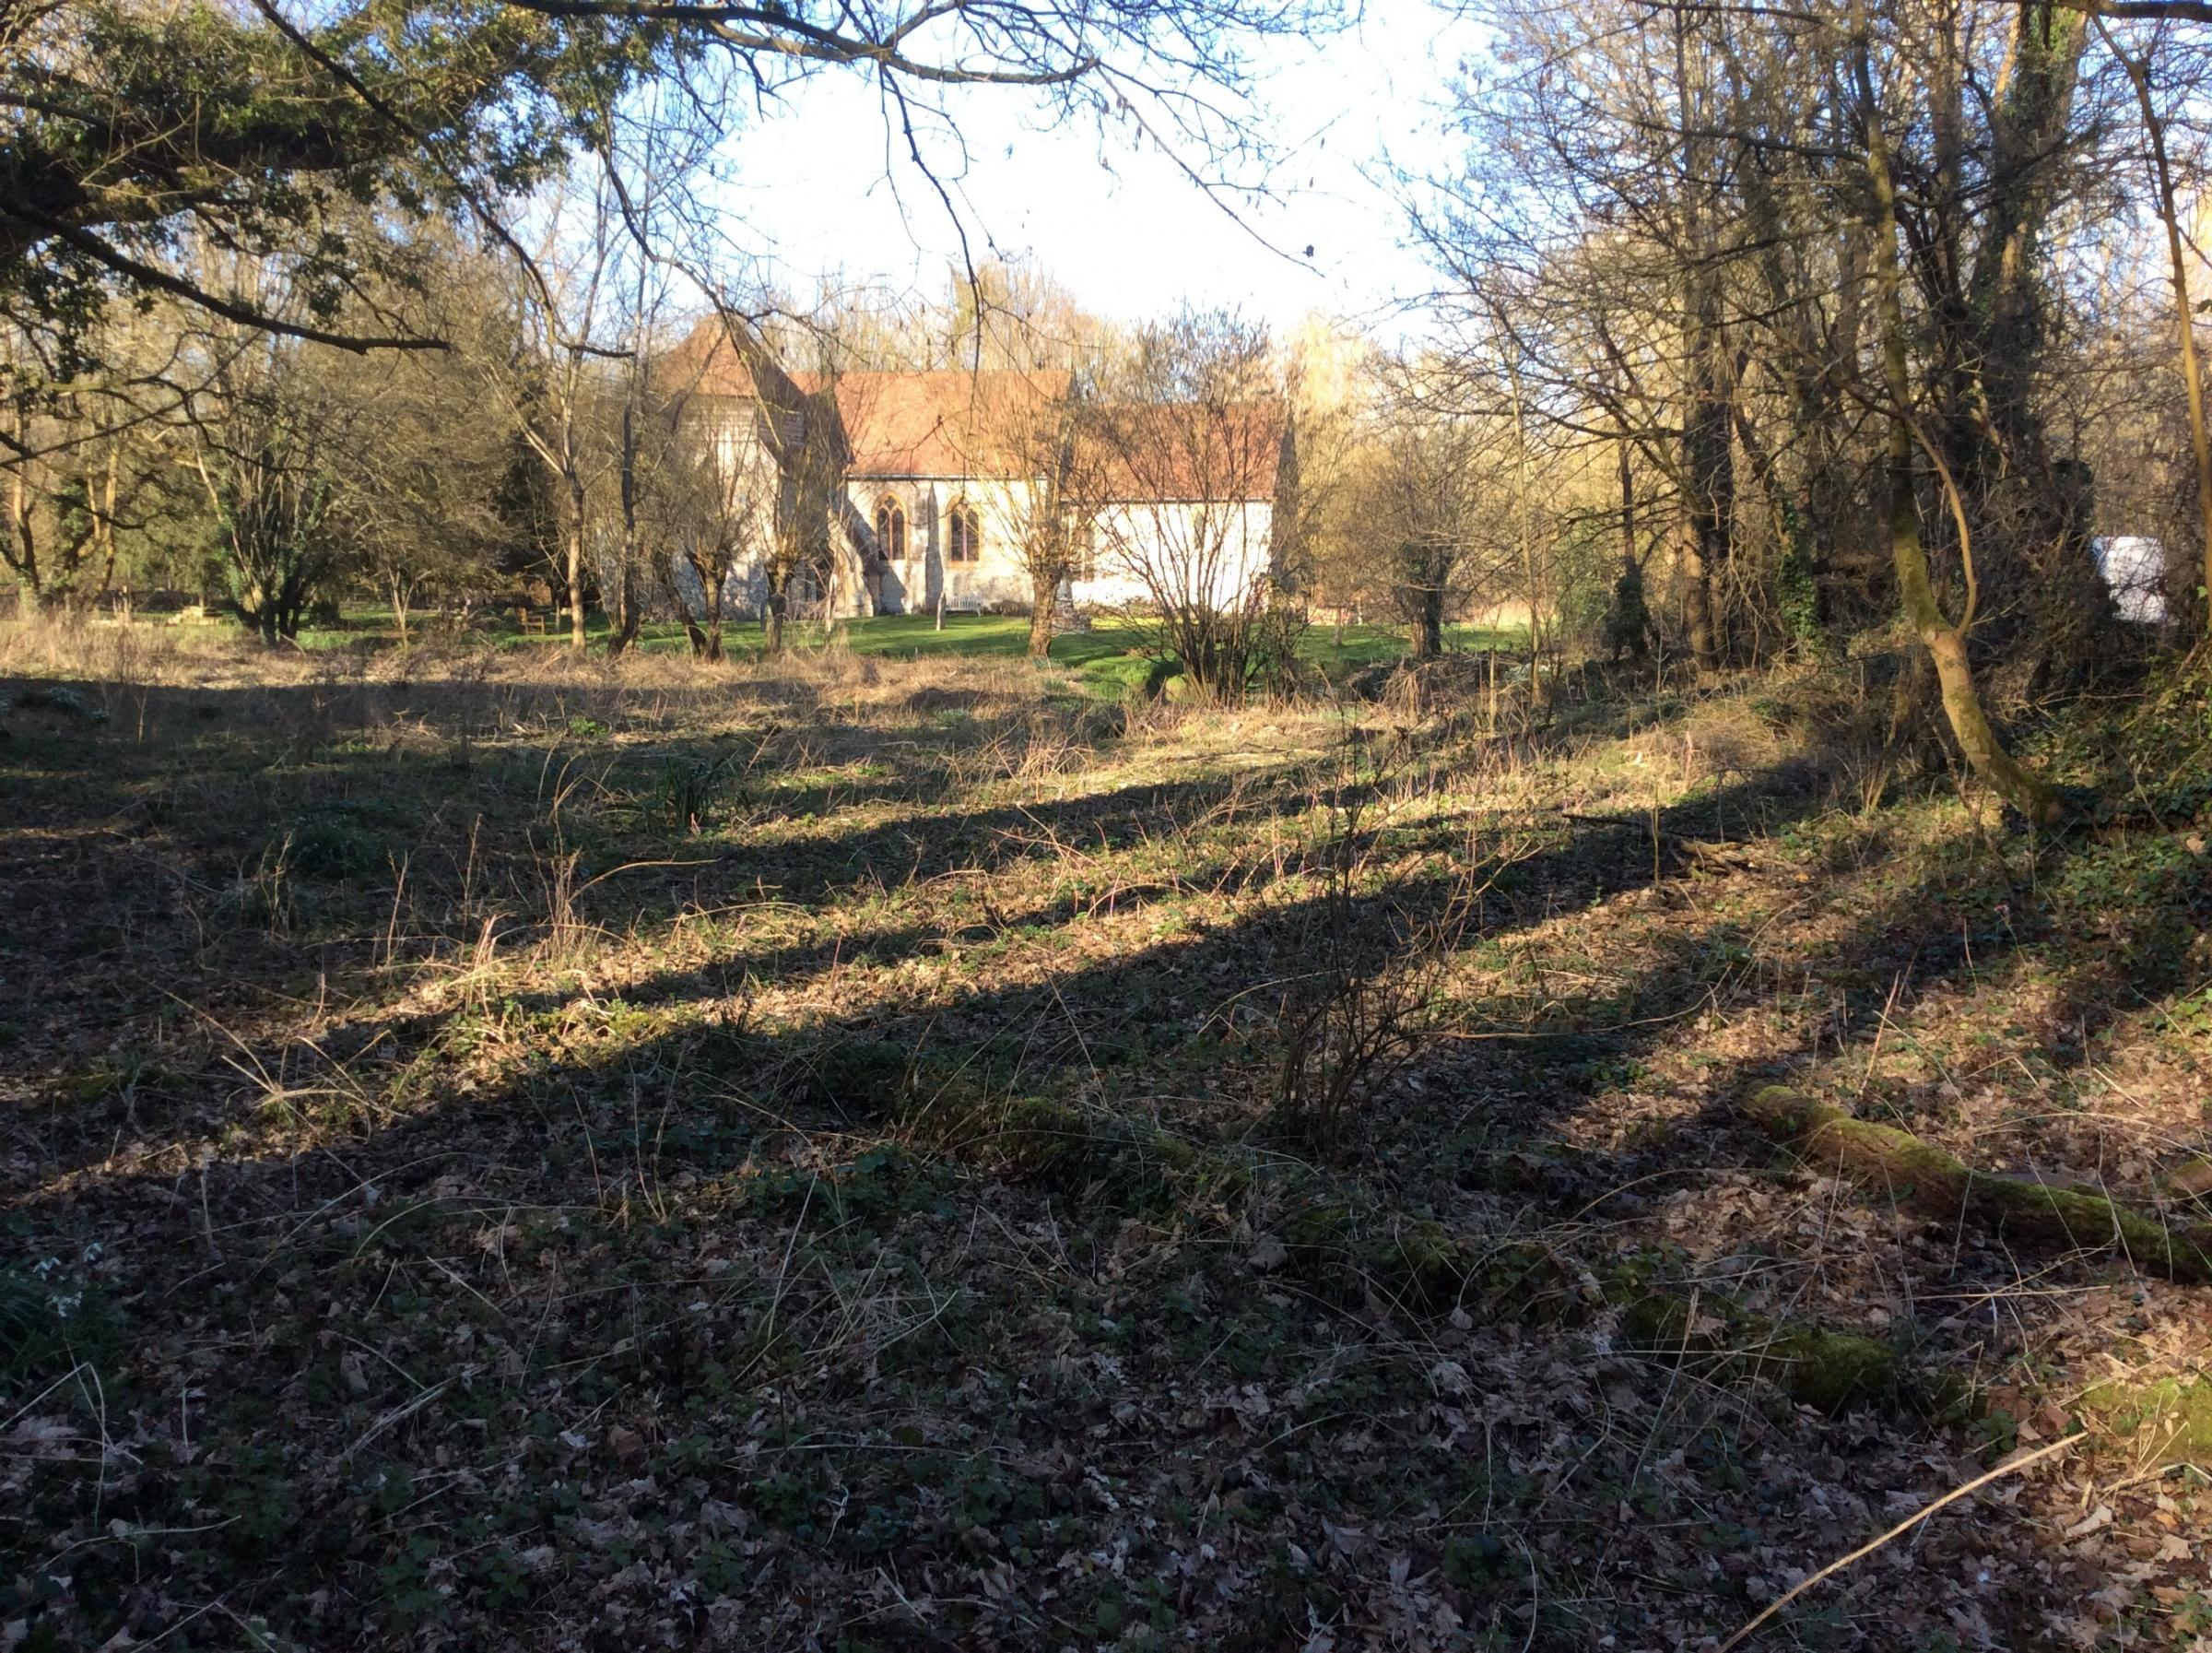 The land at St Swithun's Church, Headbourne Worthy, for which there are plans to build a new car park